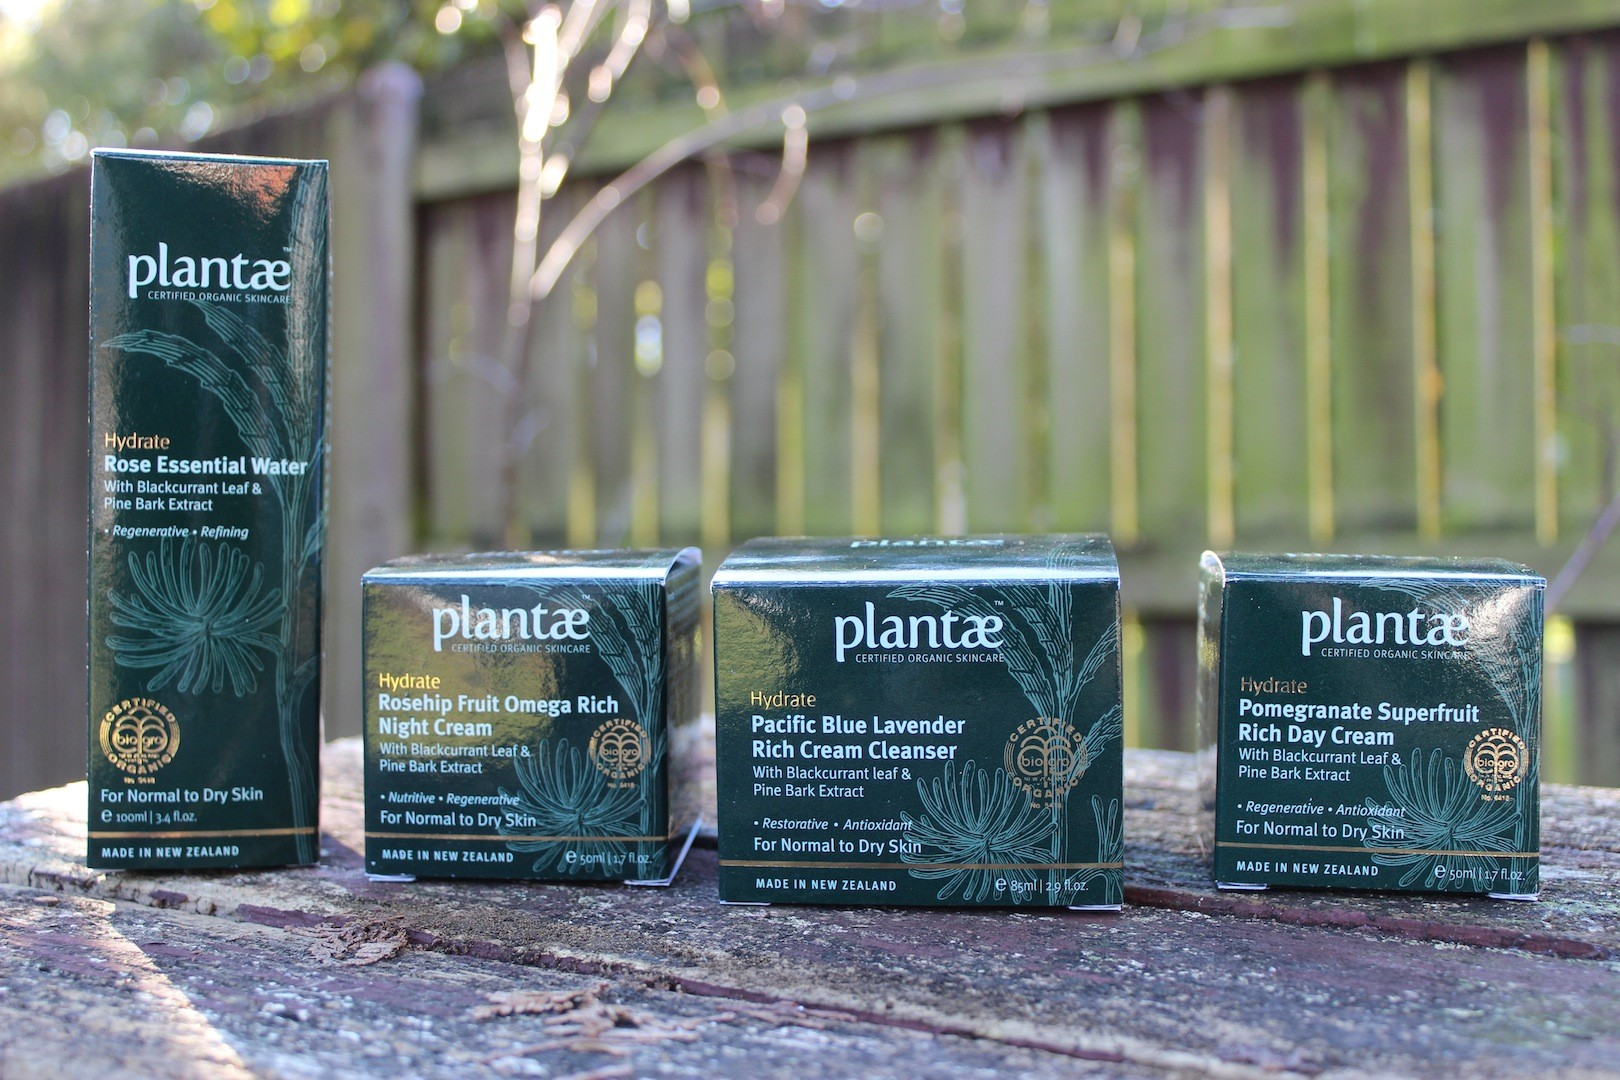 Plantae, carol priest, amy cunningham, cunningham communications, New Zealand Organic Skincare, certified organic skincare, beauty blog nz, style blog nz, fashion blog nz, makeup, skincare, angie fredatovich